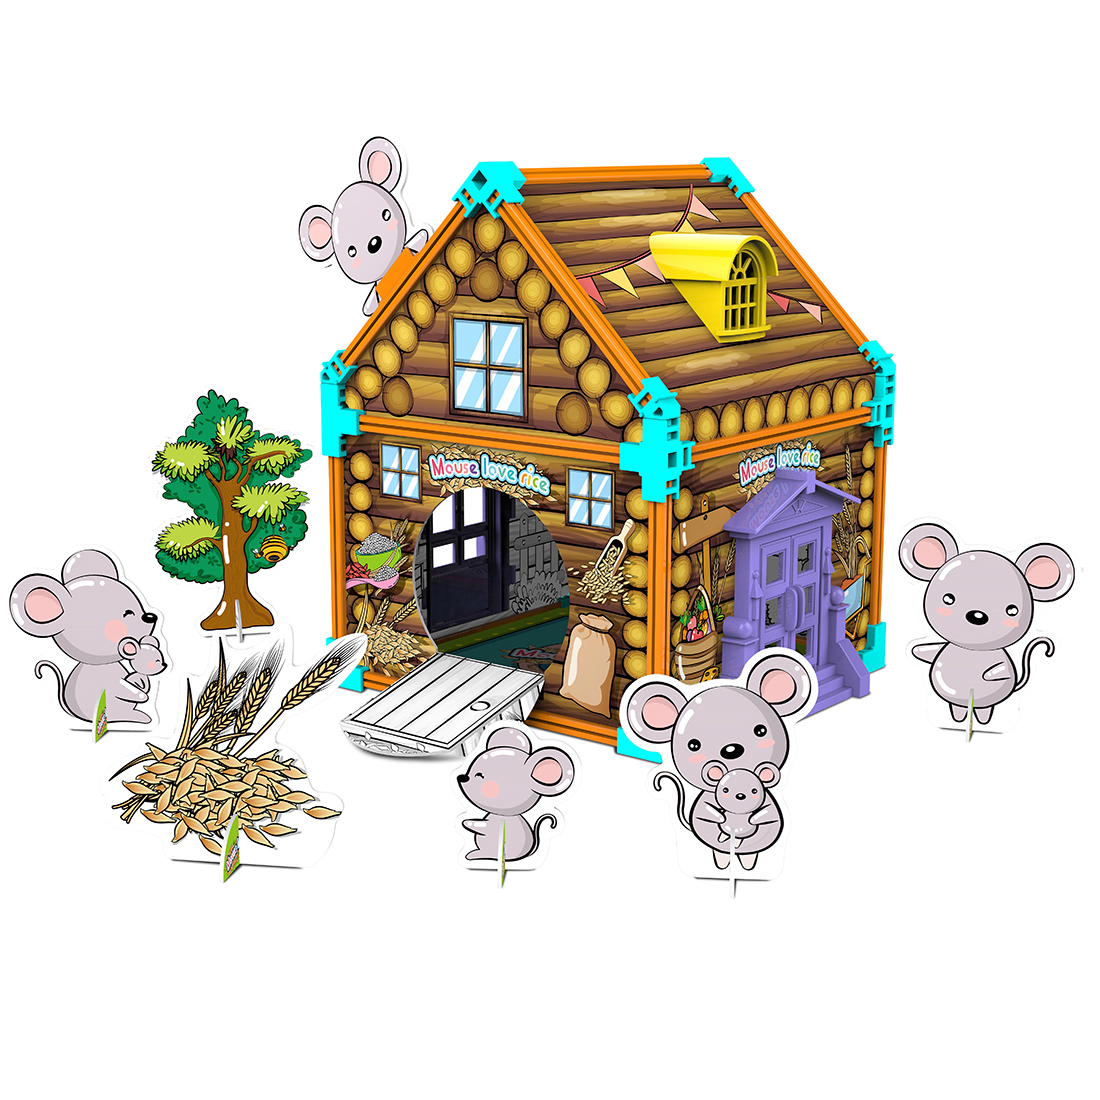 61Pcs Children Hand-Painted Jigsaw DIY <font><b>3D</b></font> <font><b>Cardboard</b></font> <font><b>Puzzles</b></font> Graffiti Assembly Toy - Mouse Love Rice/Elephant Boat/Lion King/Cow image